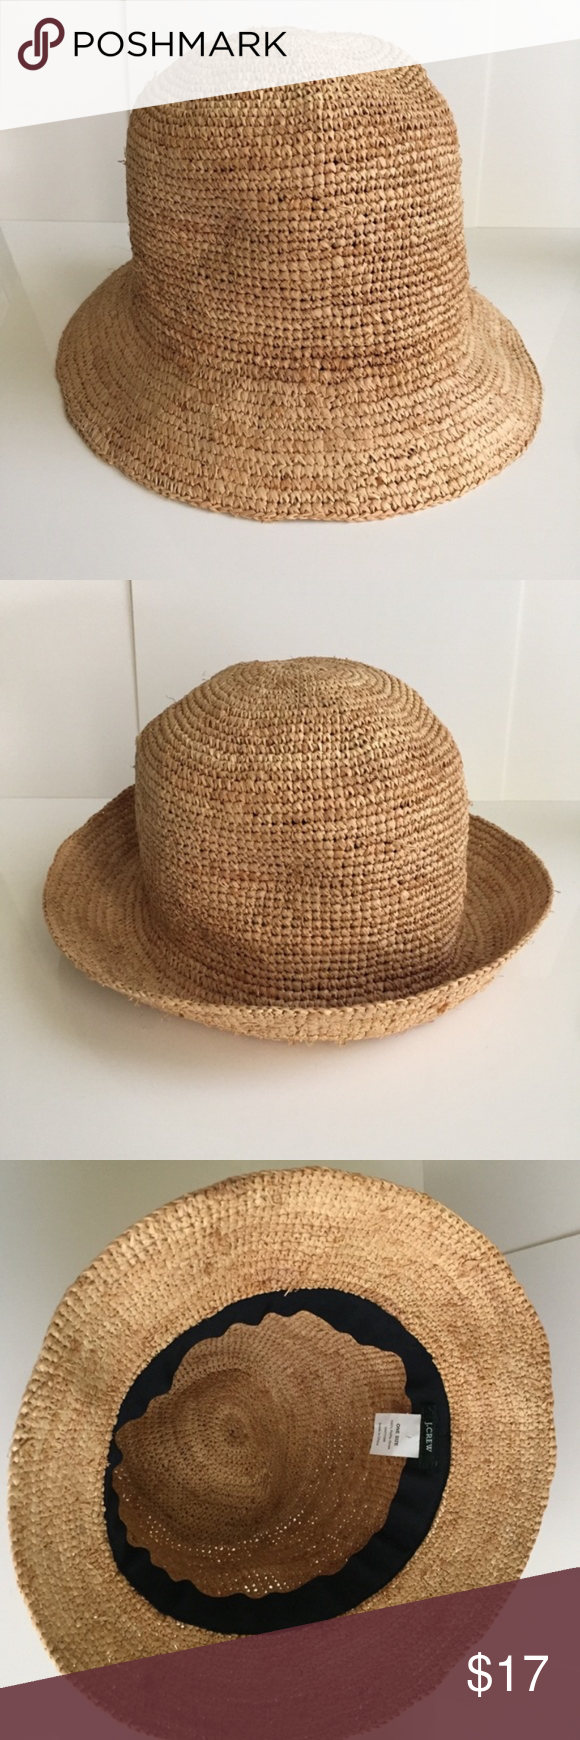 90e56d01 J crew Raffia bucket hat Perfect for the beach or pool side. Wear it brim  up or down. 100% raffia. Only worn once. Exellent condition.